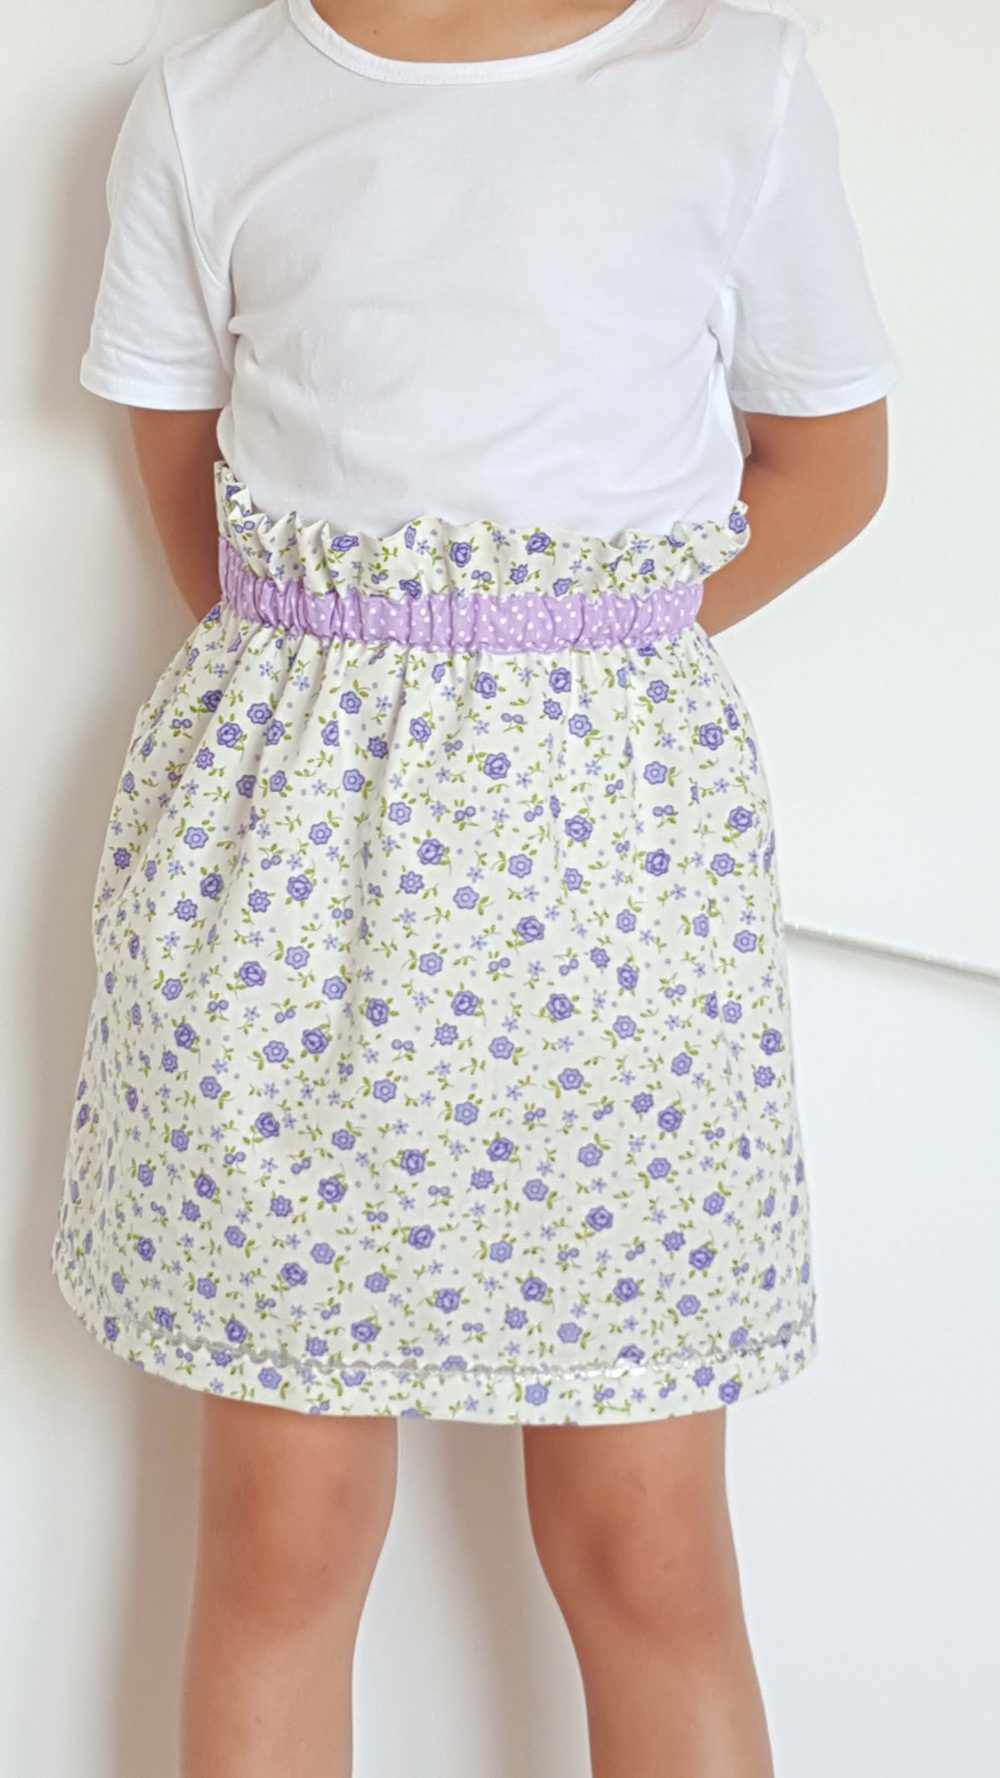 Paperbag Skirt Tutorial